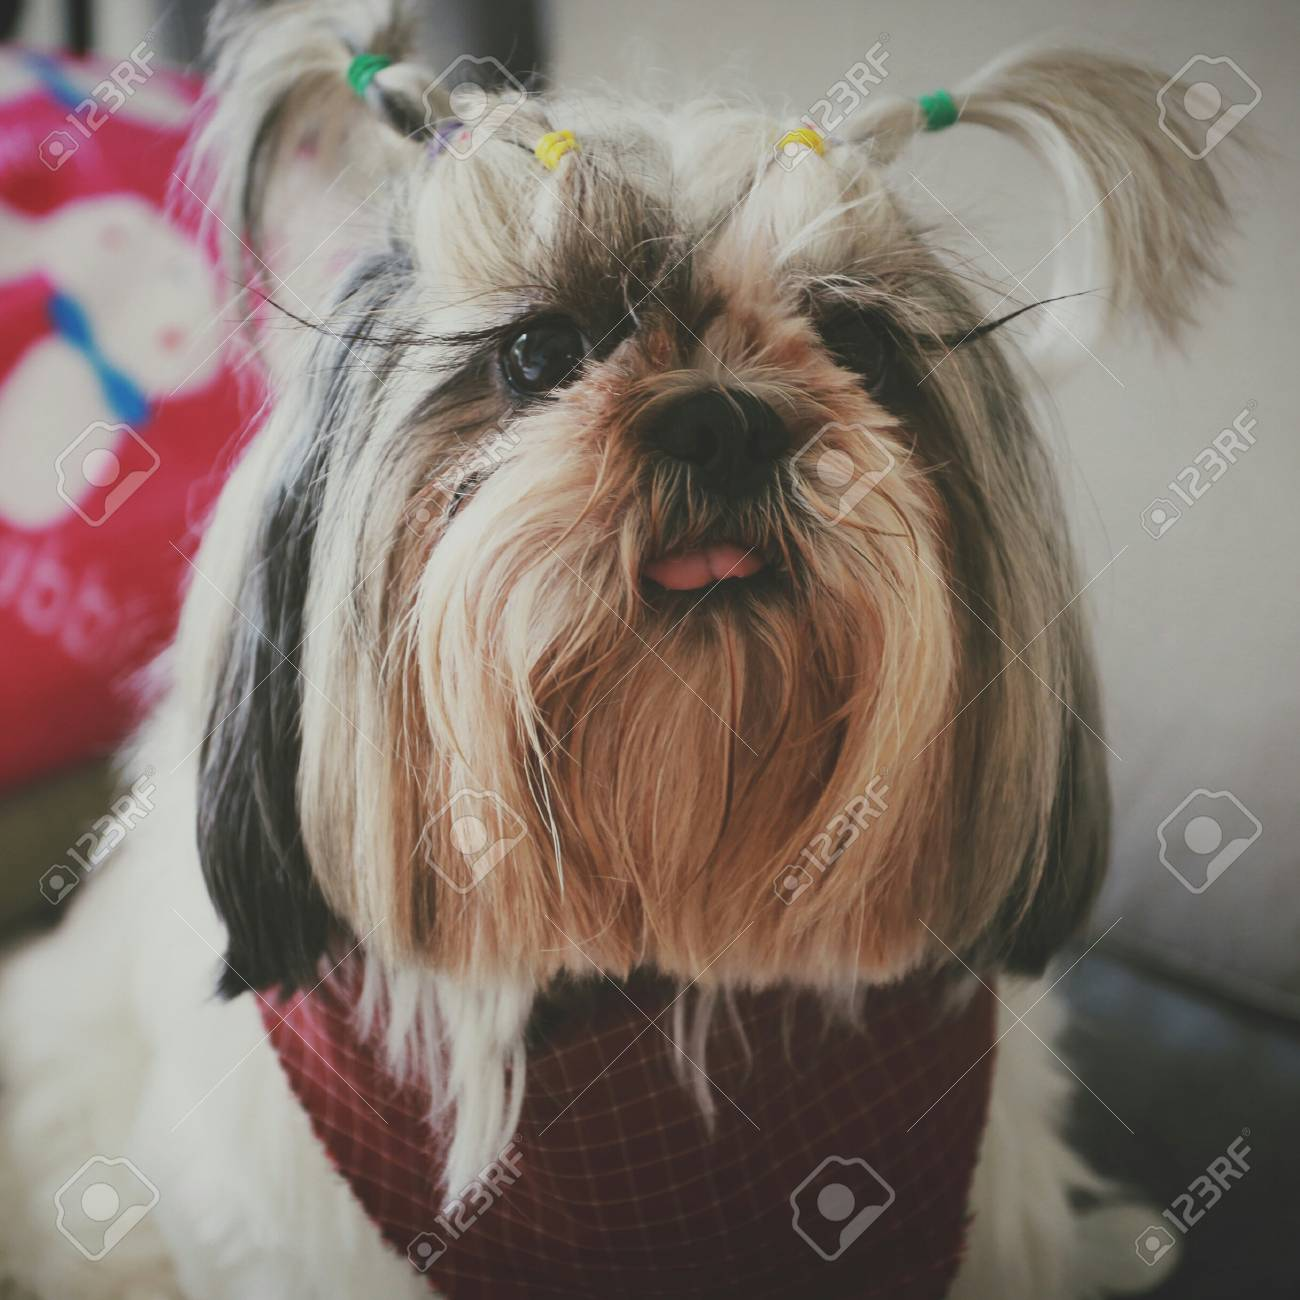 Lovely Little Shih Tzu Puppy Dog Wearing A Red Scarf Is Sitting Stock Photo Picture And Royalty Free Image Image 115234487